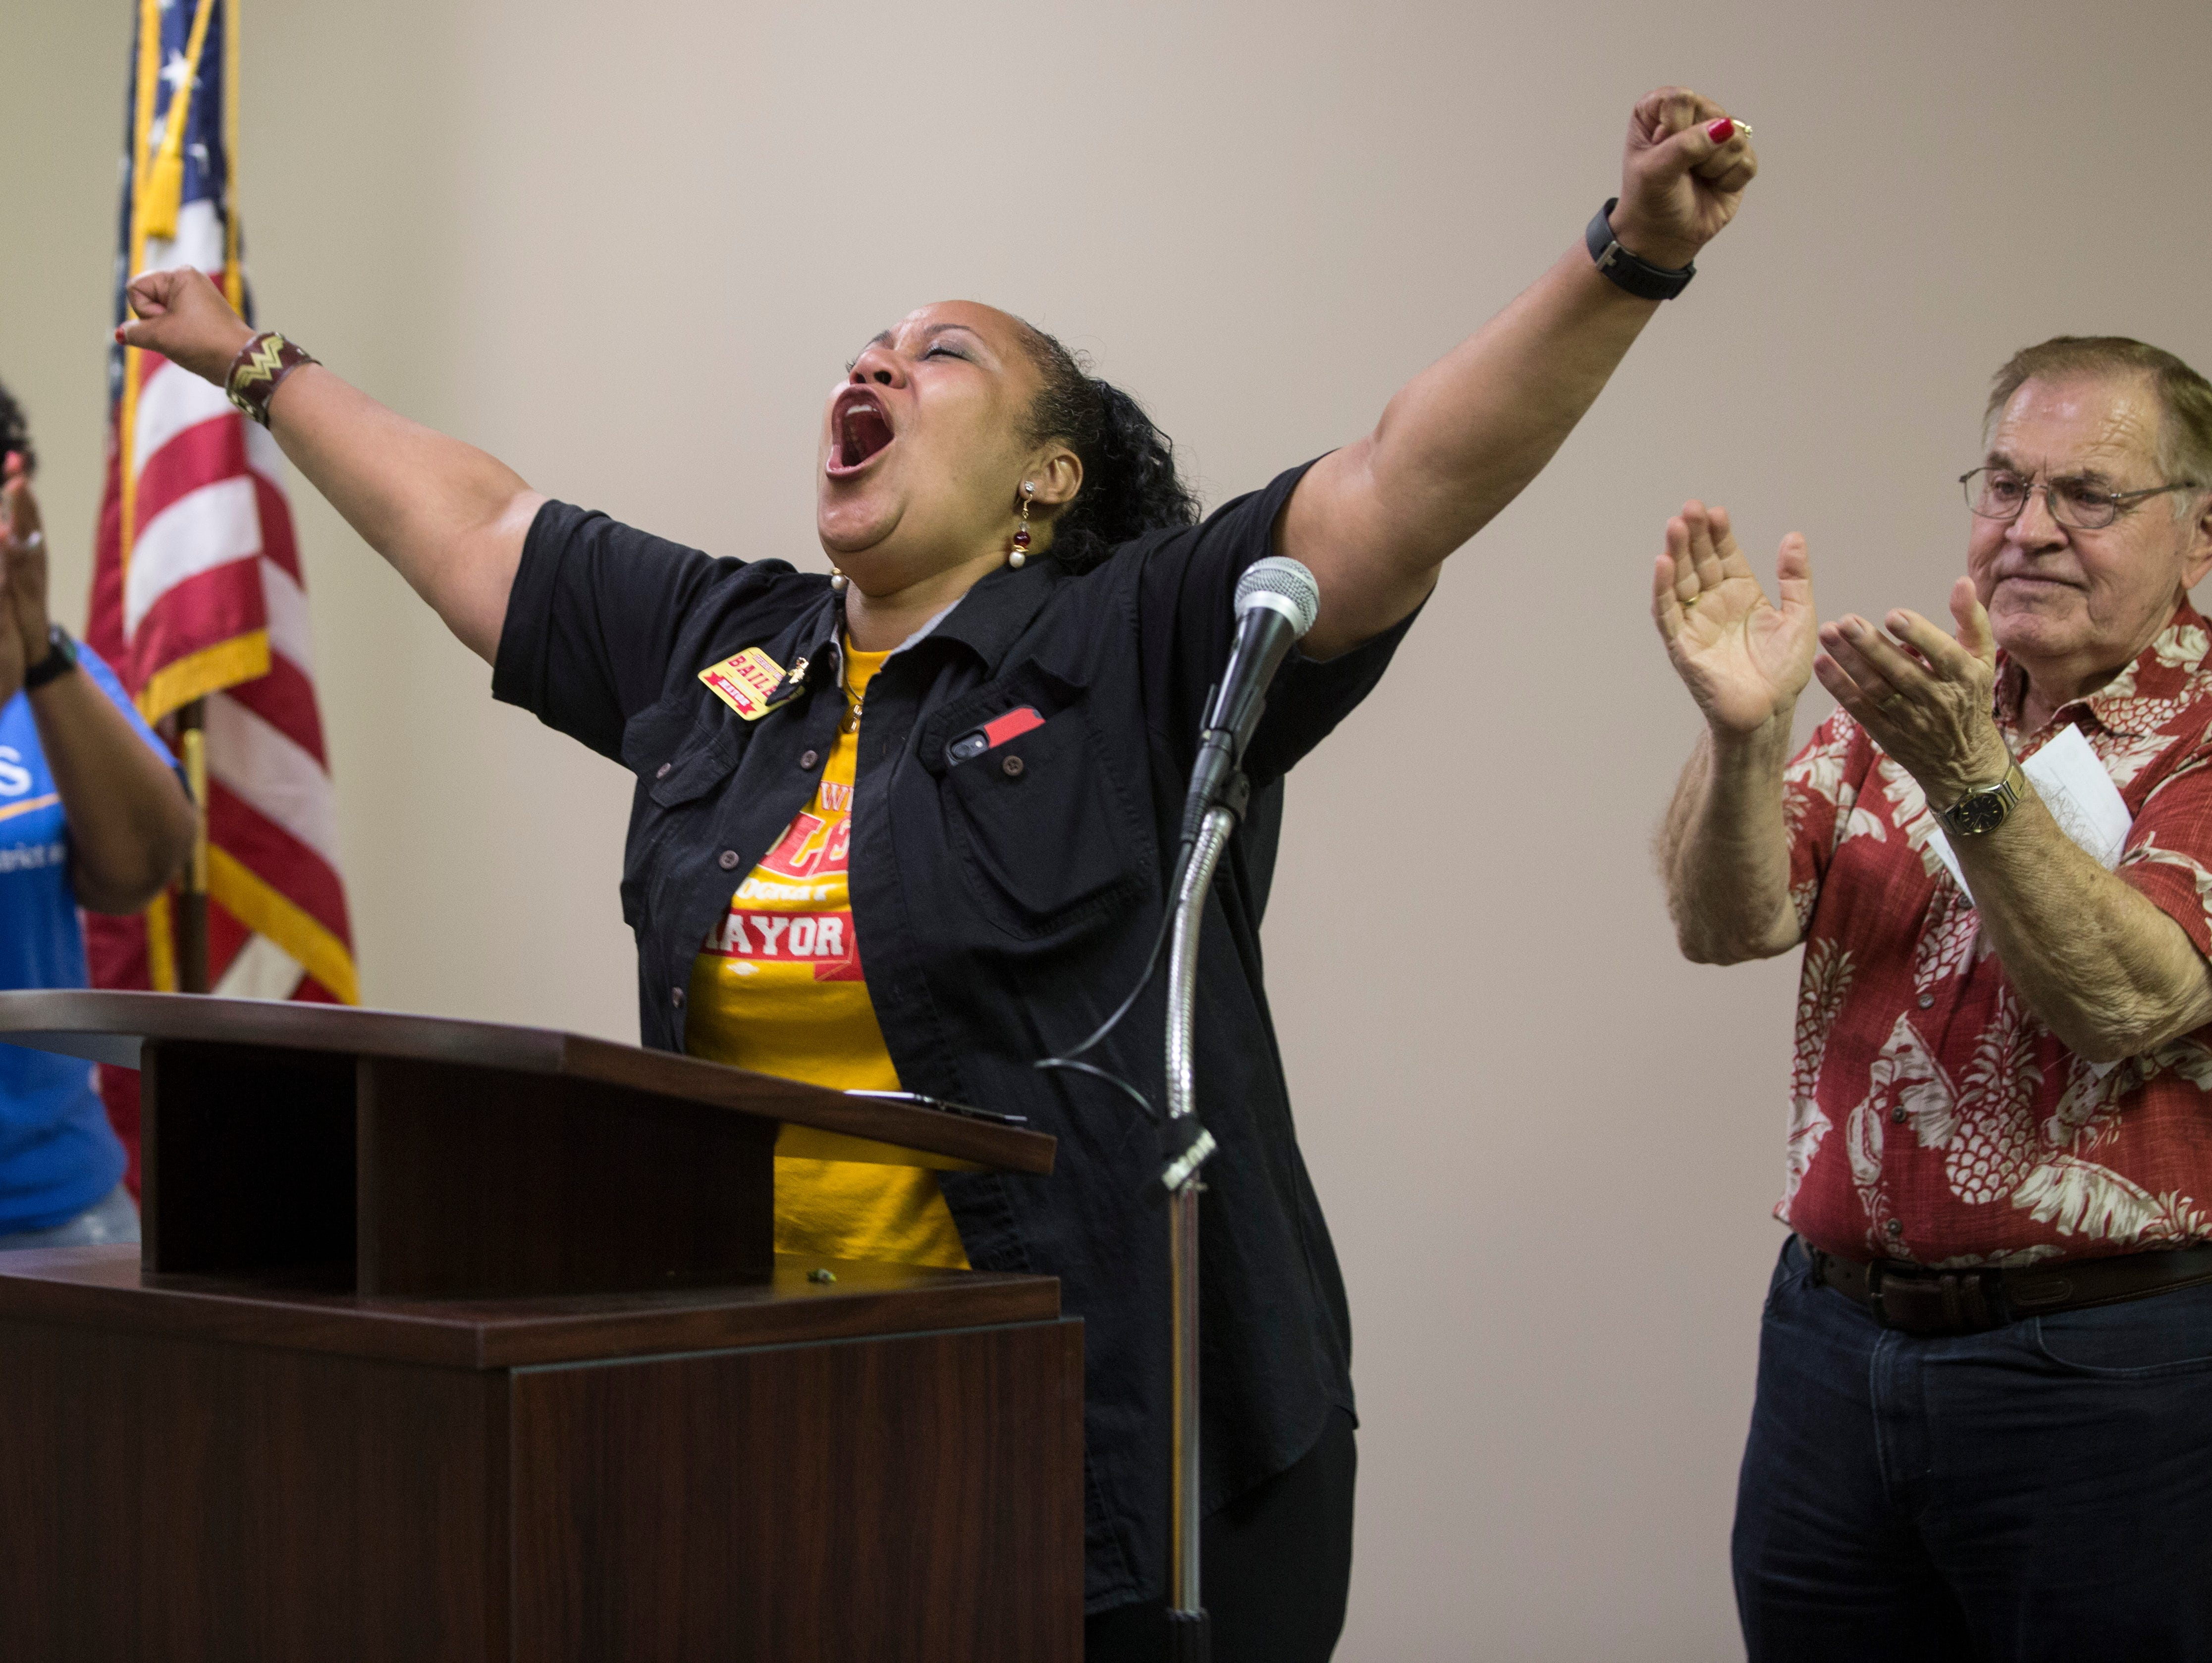 Terry Whitt Bailey gives out a cheer before beginning her victory speech at the Democratic Party's downtown headquarters on Tuesday night.